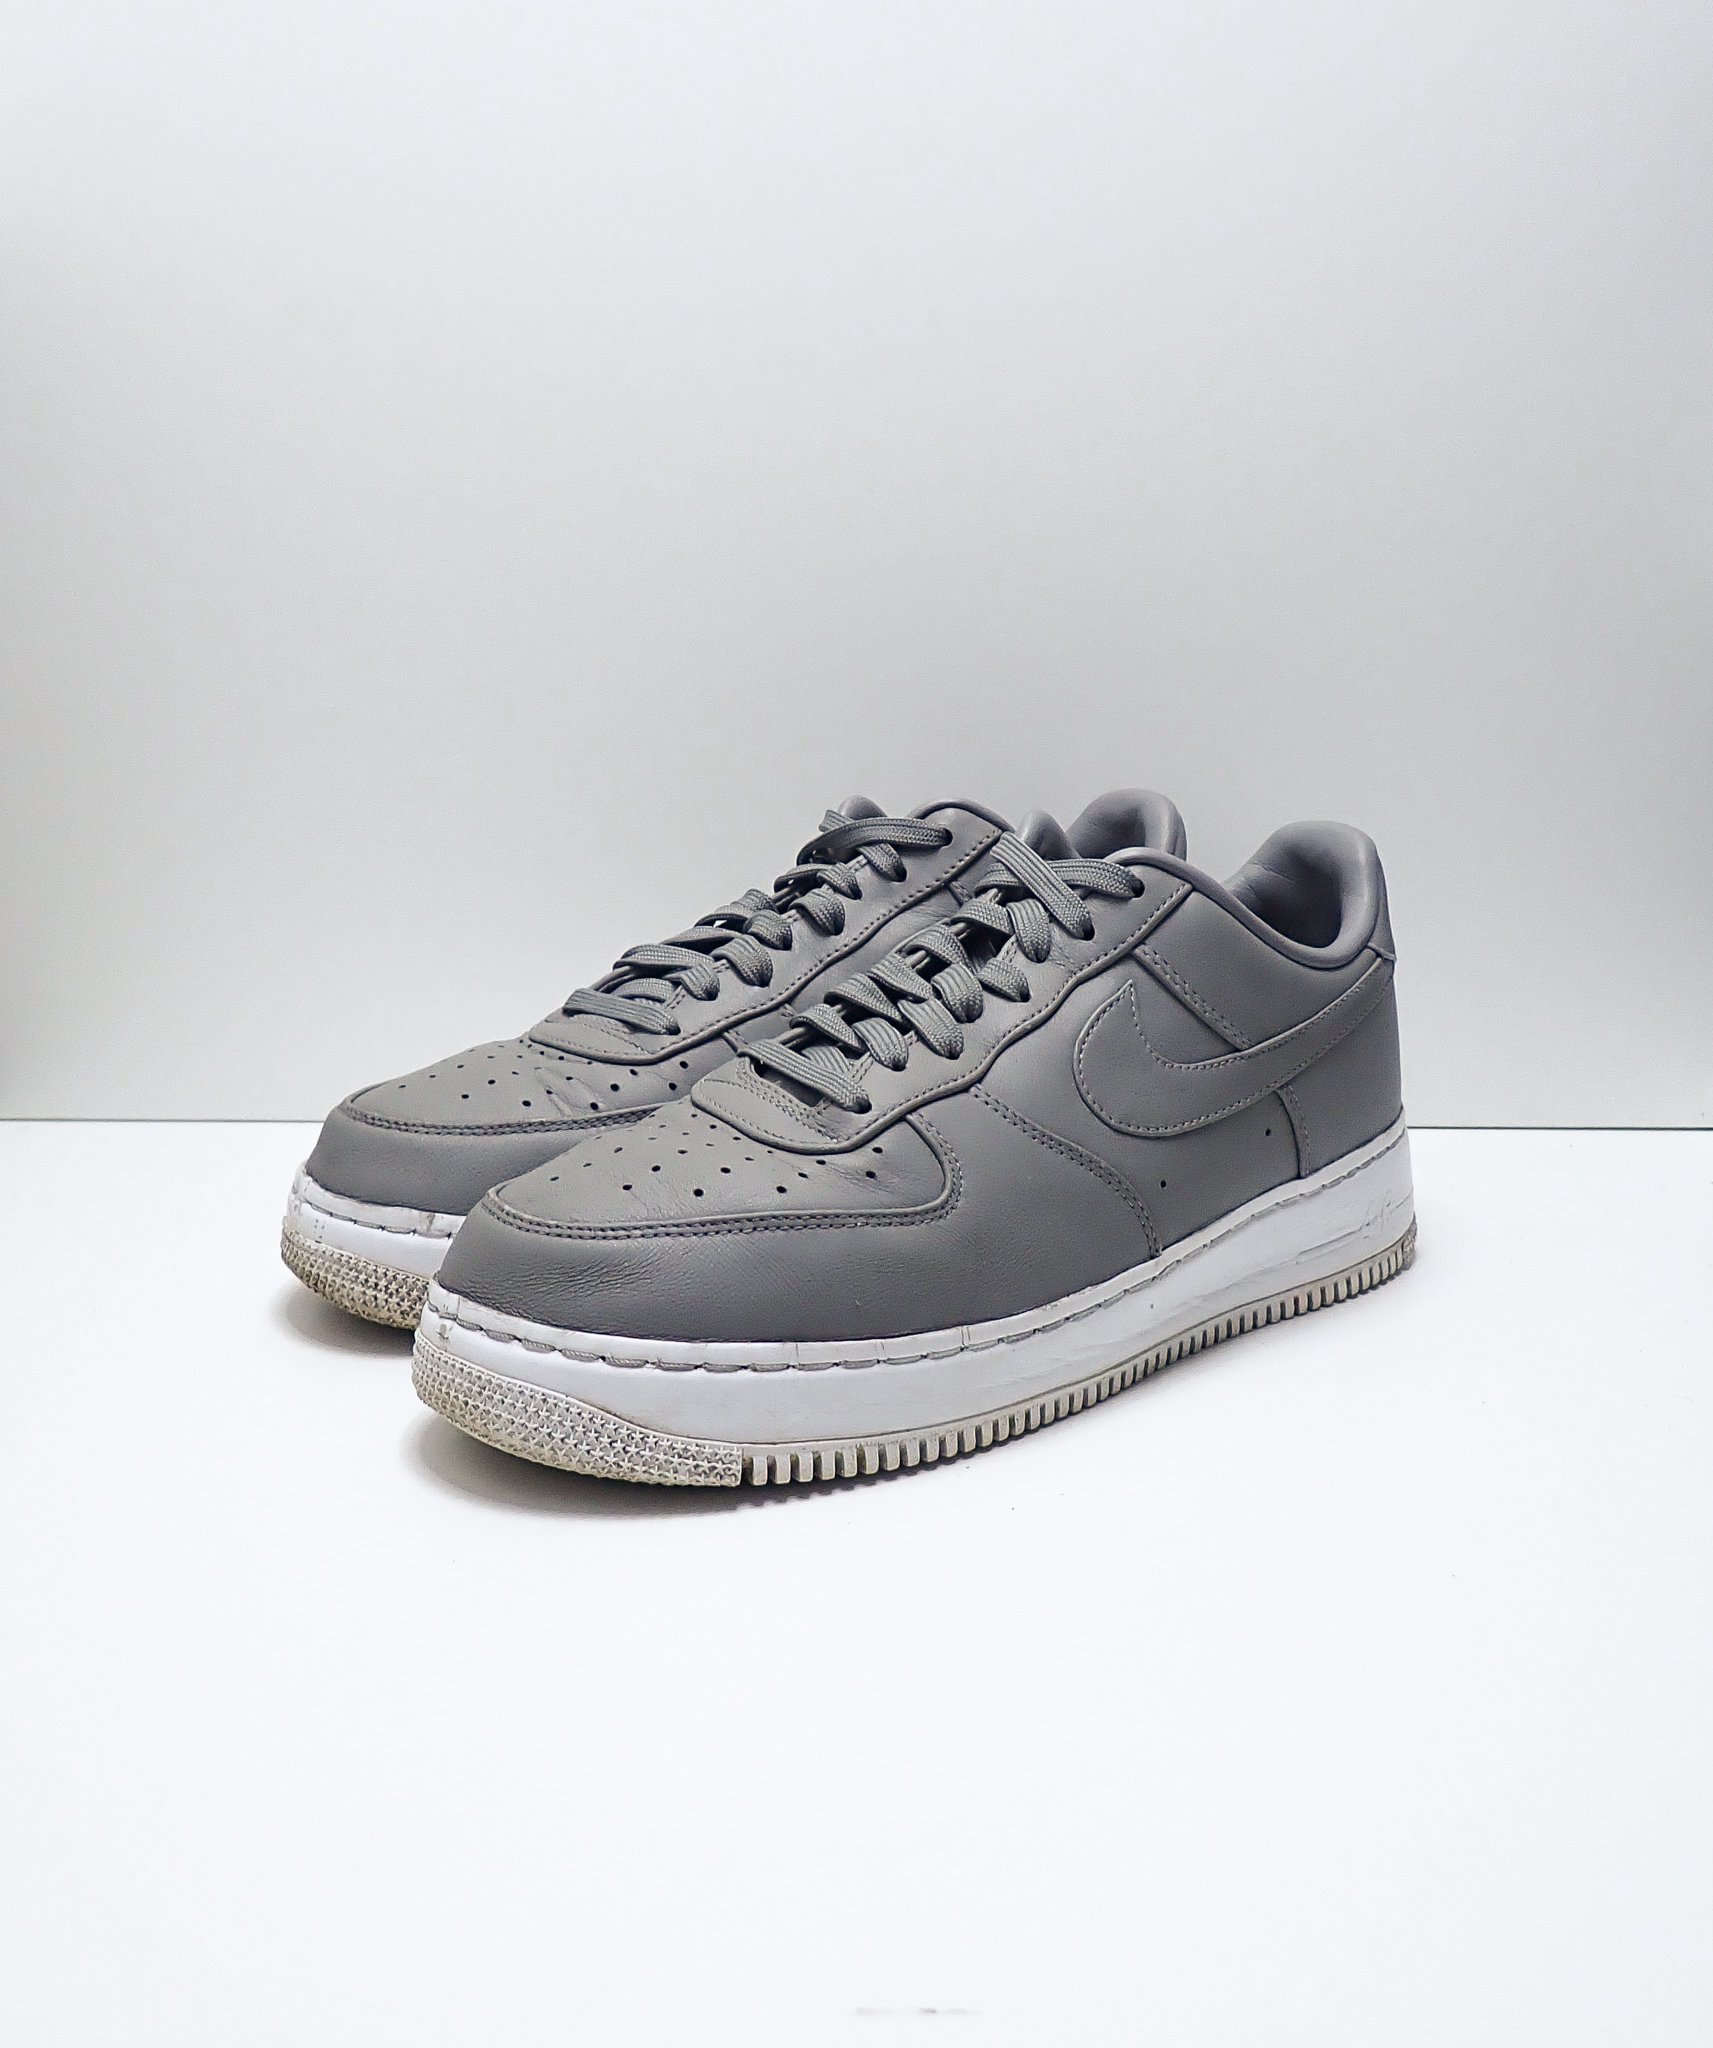 Nike Air Force 1 Low Light Charcoal